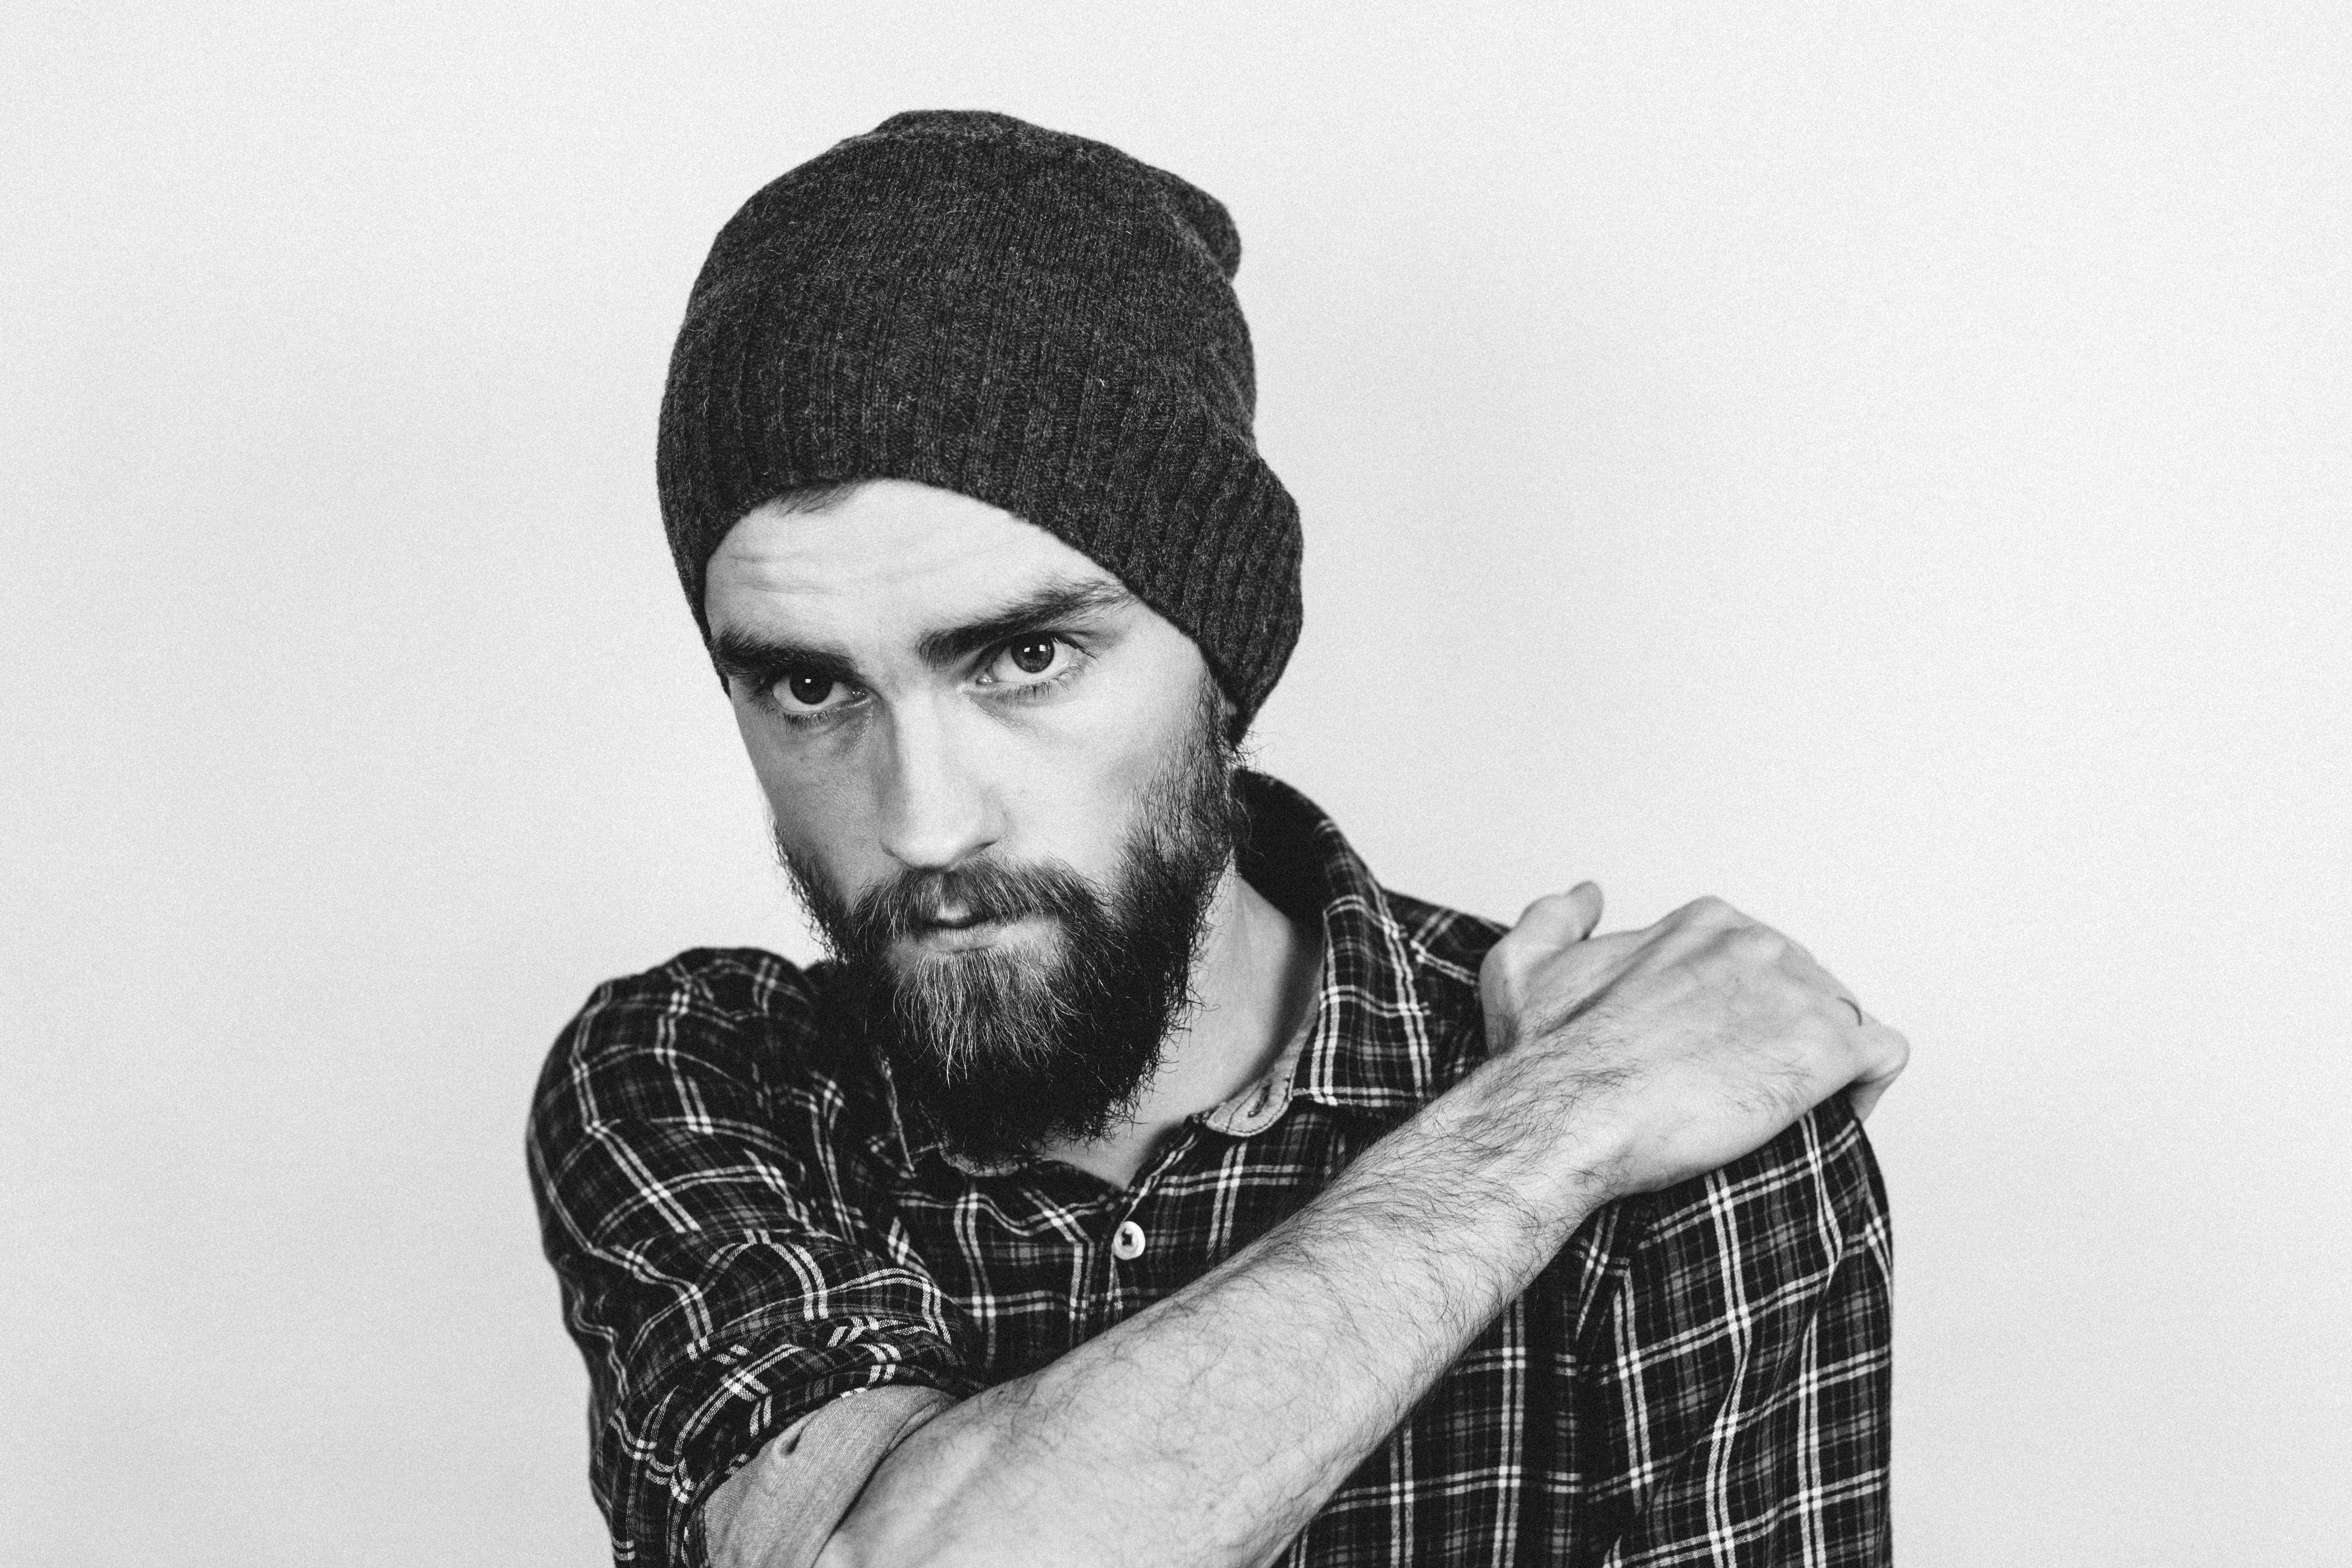 Man in Beanie Holding His Shoulder